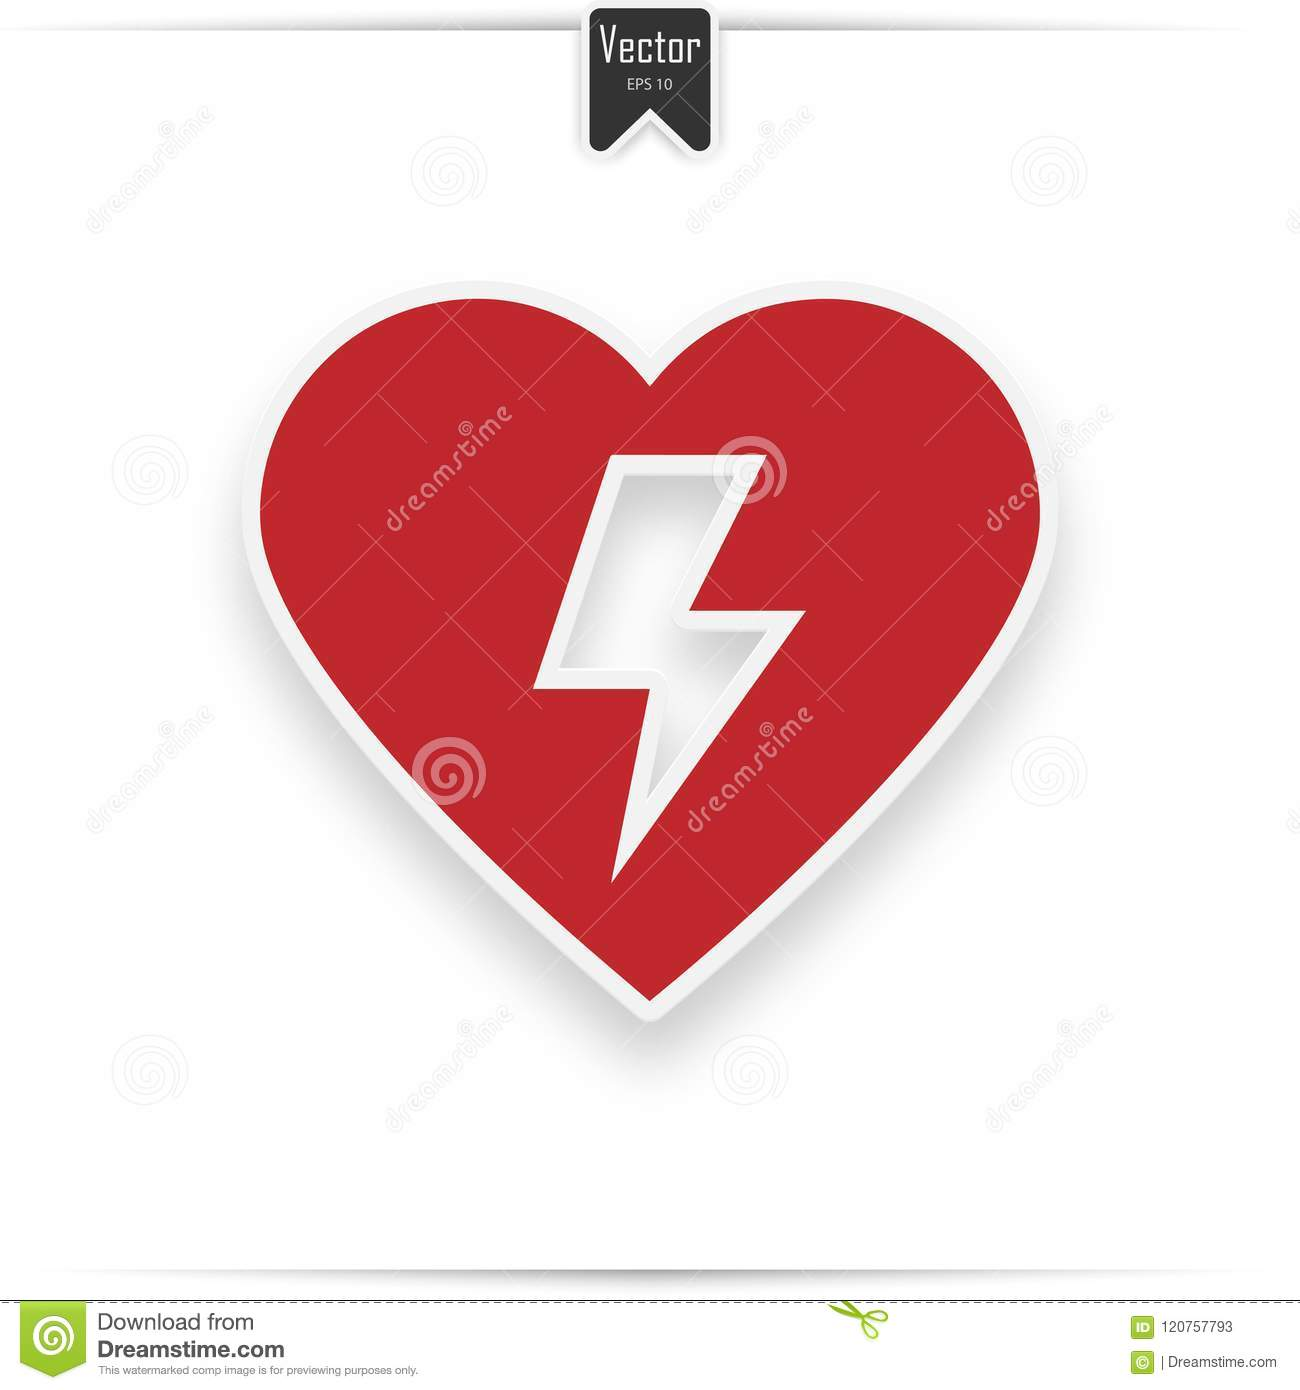 Royalty free aed stock images, photos & vectors   shutterstock.